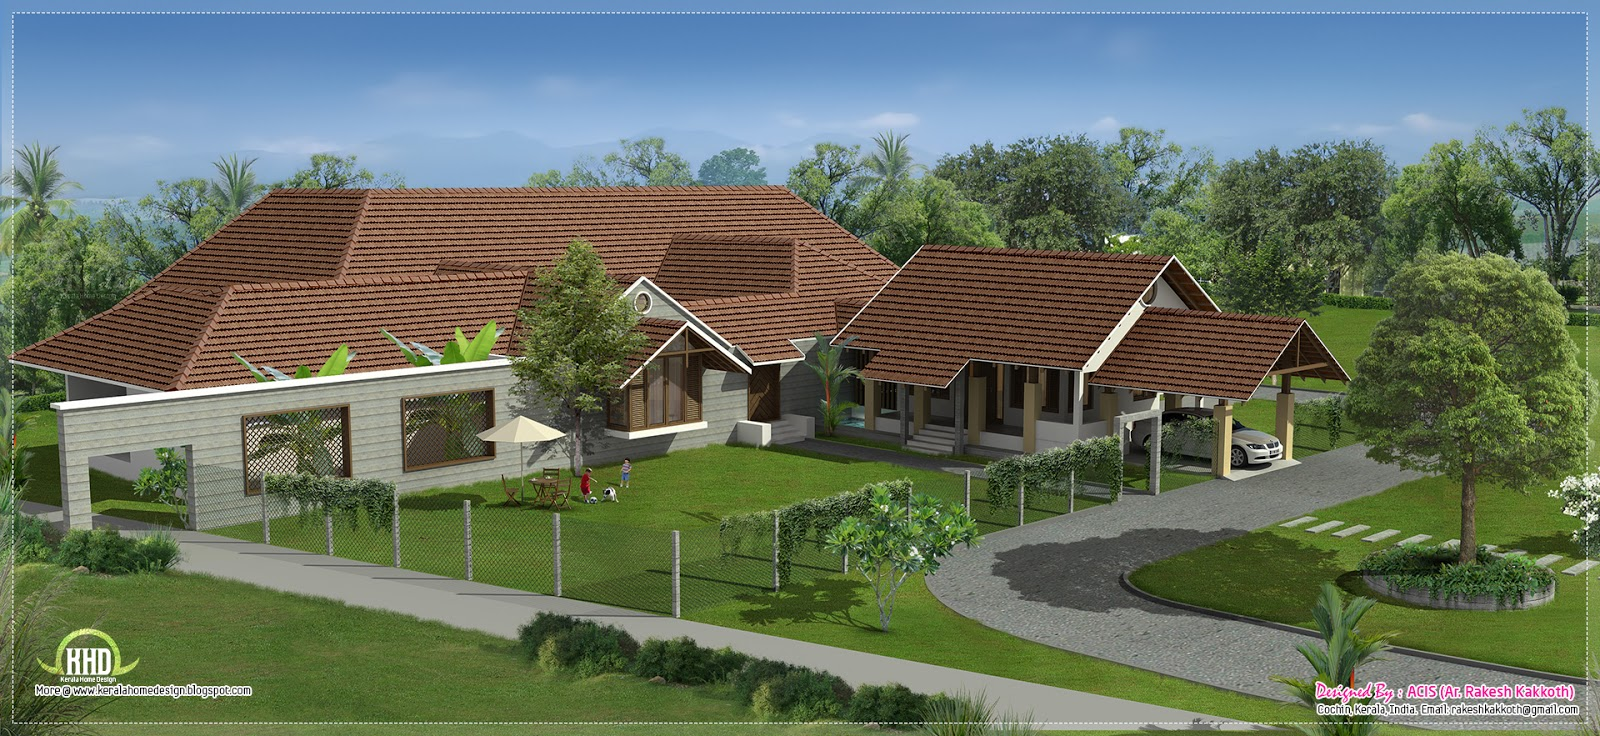 Luxury bungalow exterior design house design plans Bungalo house